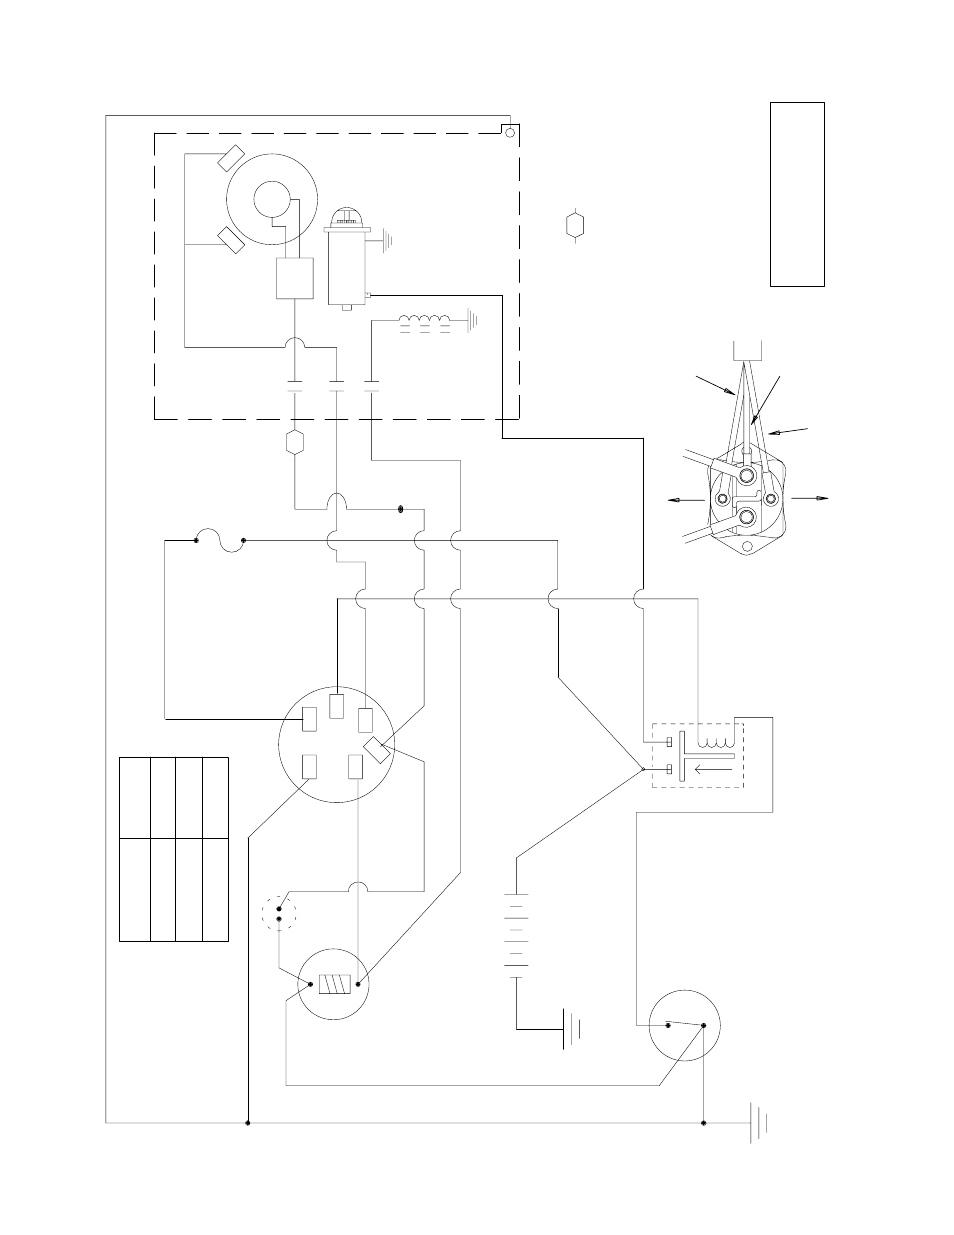 hight resolution of schematics and diagrams electrical schematics and diagrams electrical schematic toro sand pro 5020